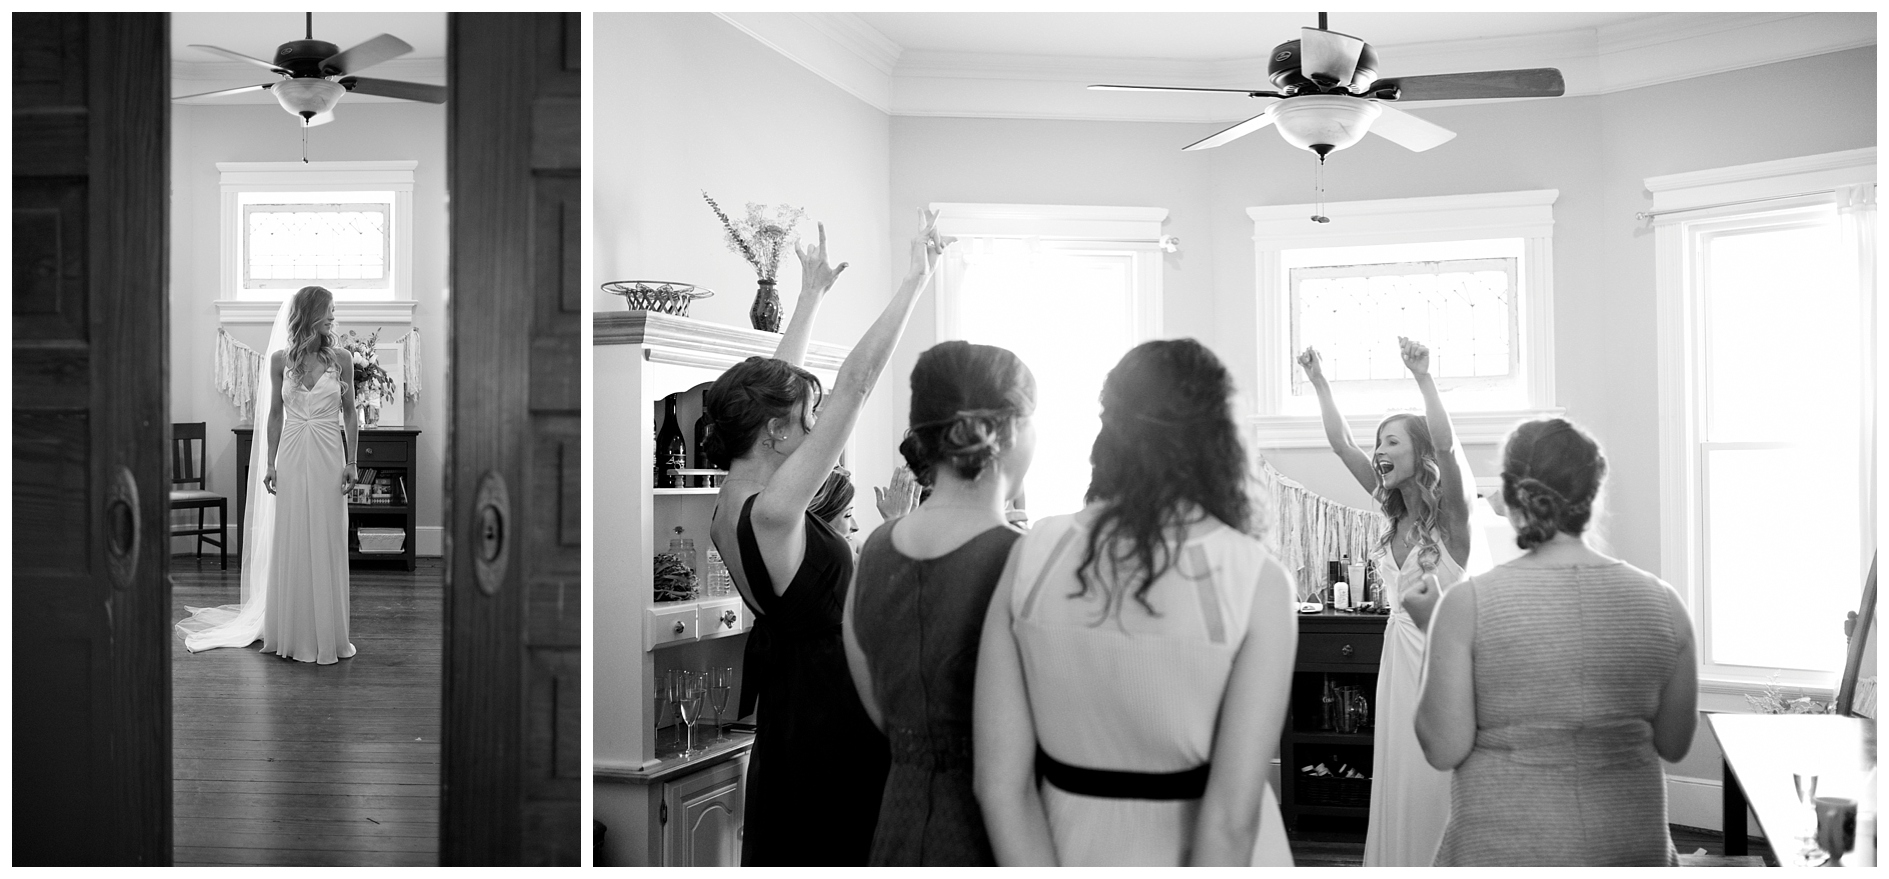 Bloom&Lo_AtlantaPhotographer_AmeliaTatnall_2015_Wedding_Georgia_Atlanta_AmbientStudio_Sara&Jared_Blog_Portfolio__0017.jpg